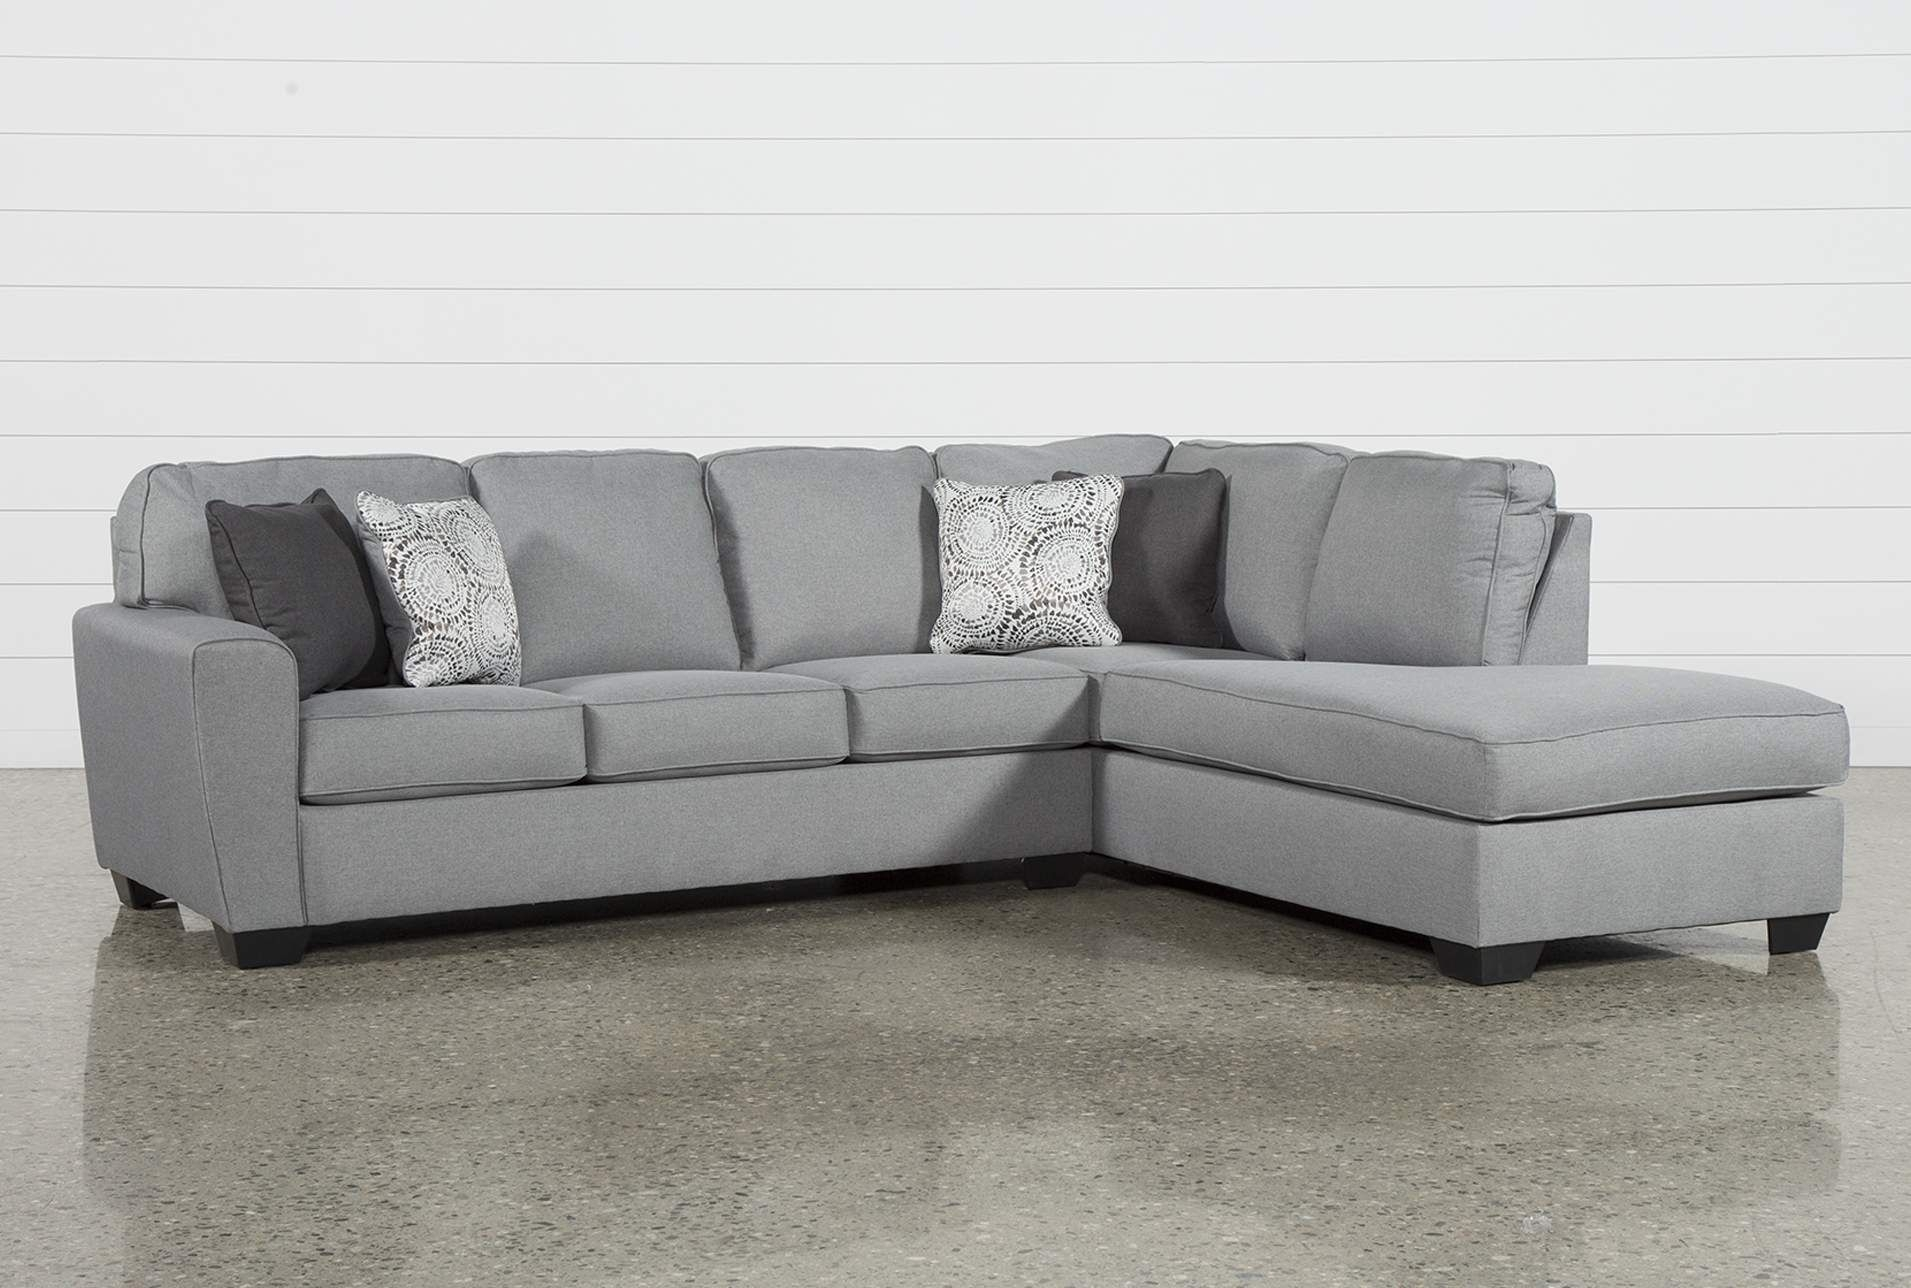 Mcdade Ash 2 Piece Sectional W/raf Chaise | Ash And Products Inside Josephine 2 Piece Sectionals With Raf Sofa (Image 16 of 25)